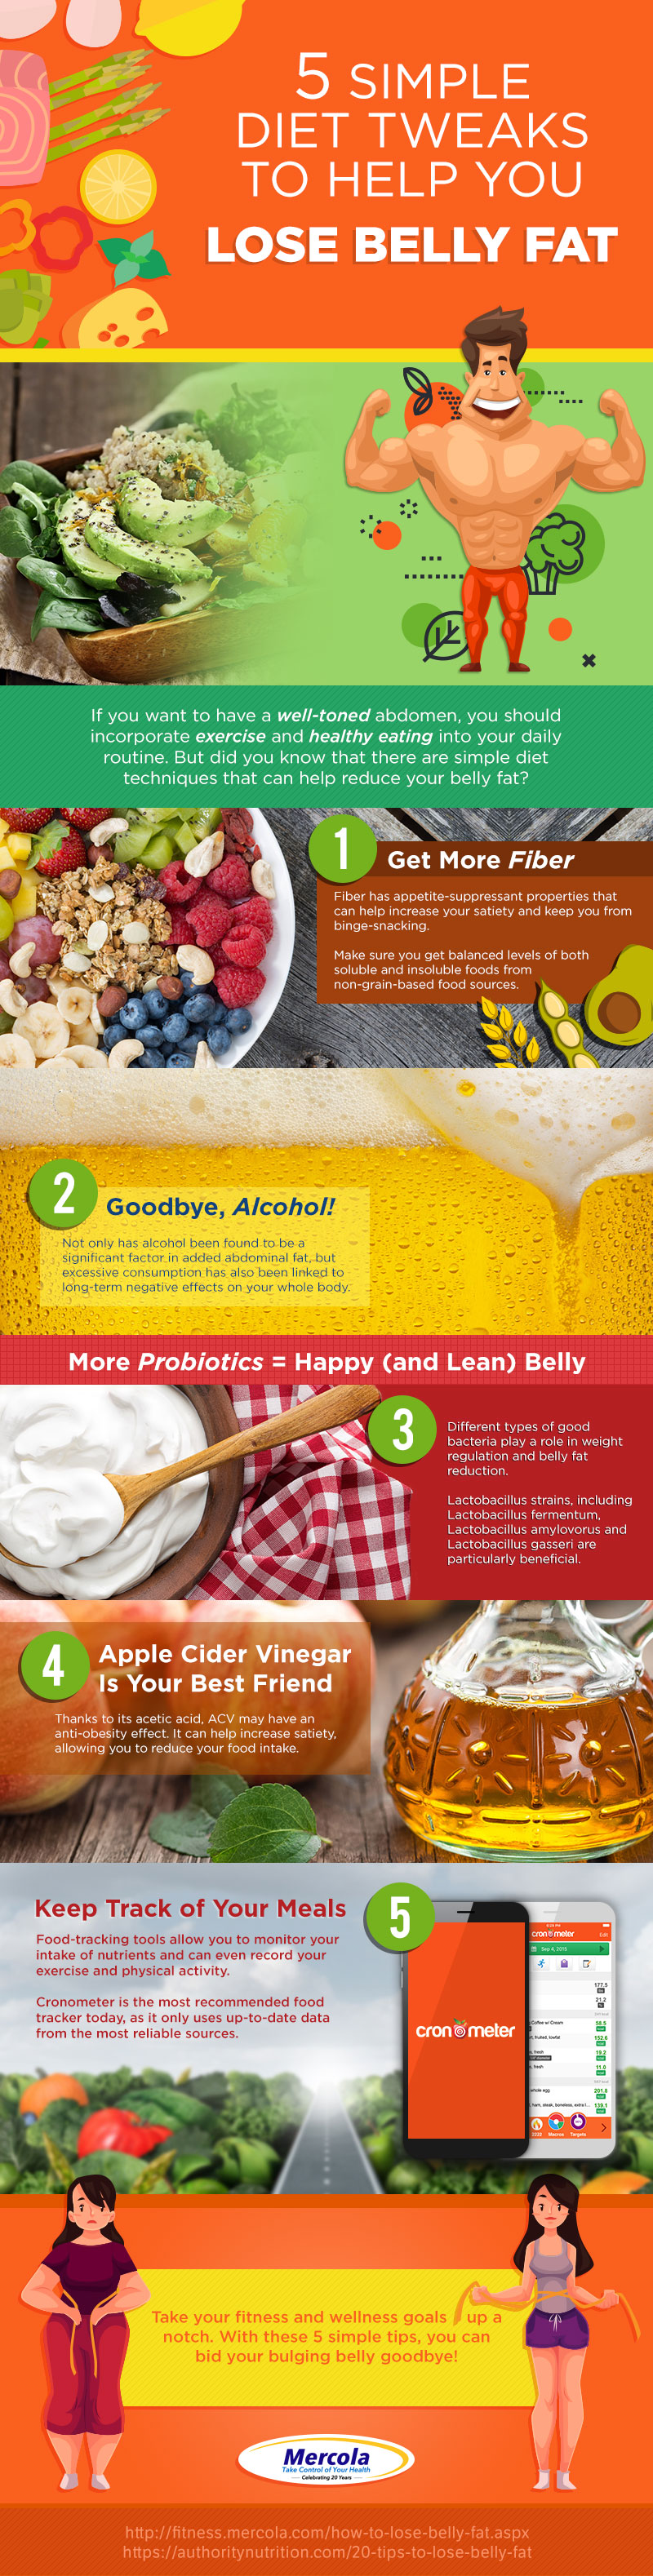 Diet Tweaks to Help Lose Belly Fat Infographic